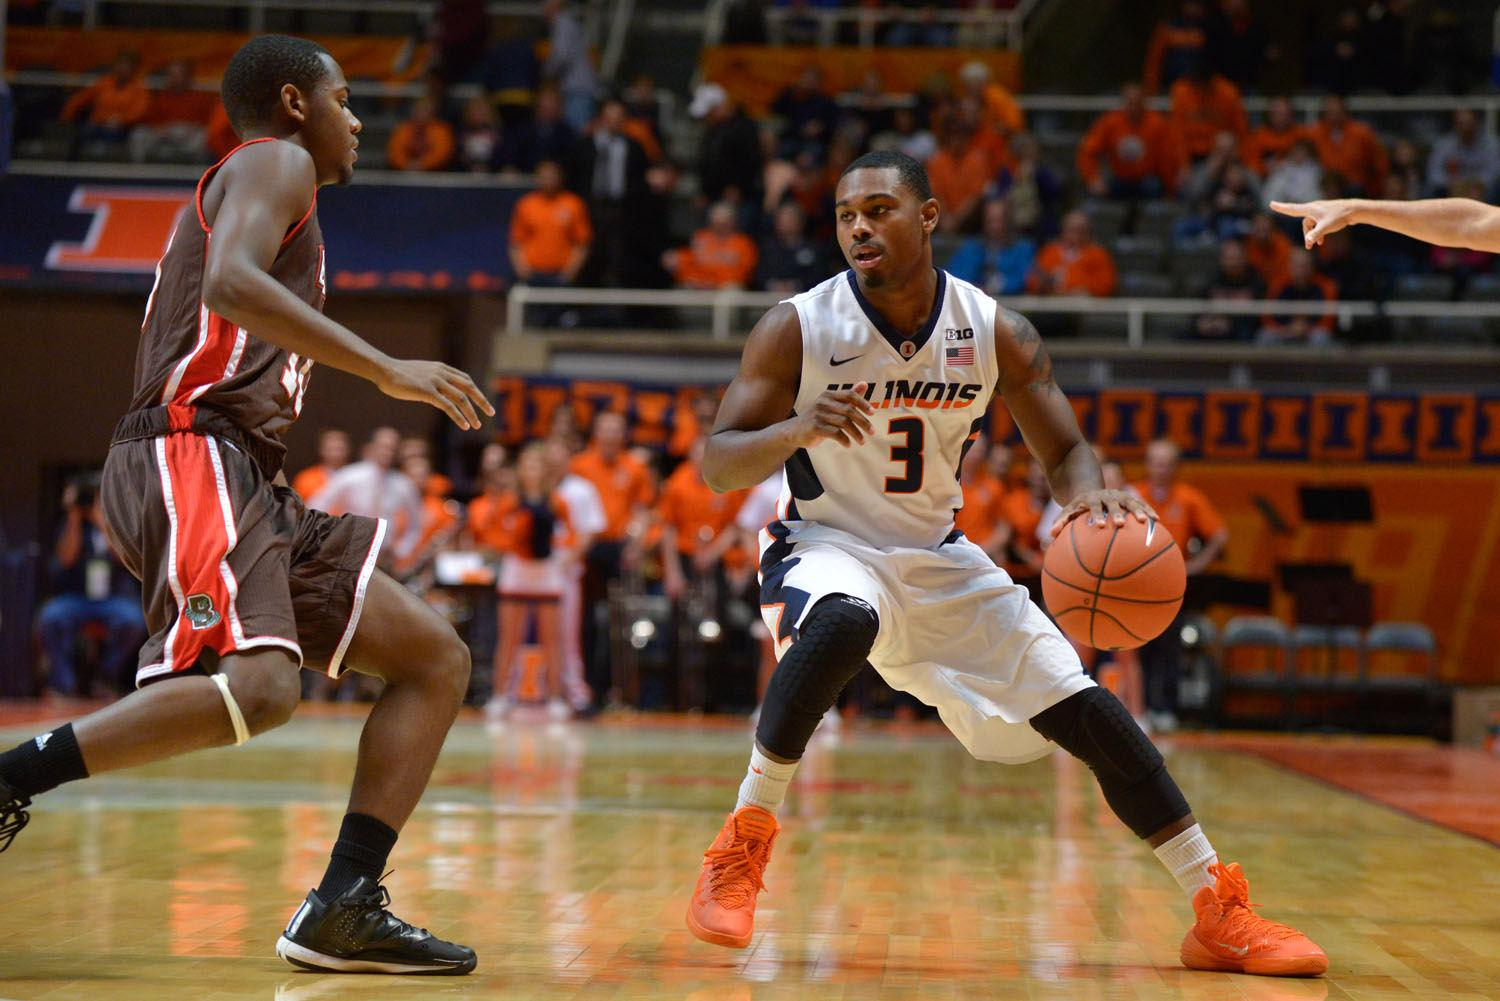 Generally%2C+Illinois+basketball%E2%80%99s%C2%A0Saturday%C2%A0matchup+with+American+could+be+considered+a+%E2%80%9Ctrap+game%E2%80%9D+before%C2%A0Tuesday%E2%80%99s+game+against+No.+10+Villanova.+It%E2%80%99s+not+a+trap+game%2C+it%E2%80%99s+exactly+what+the+Illini+need.